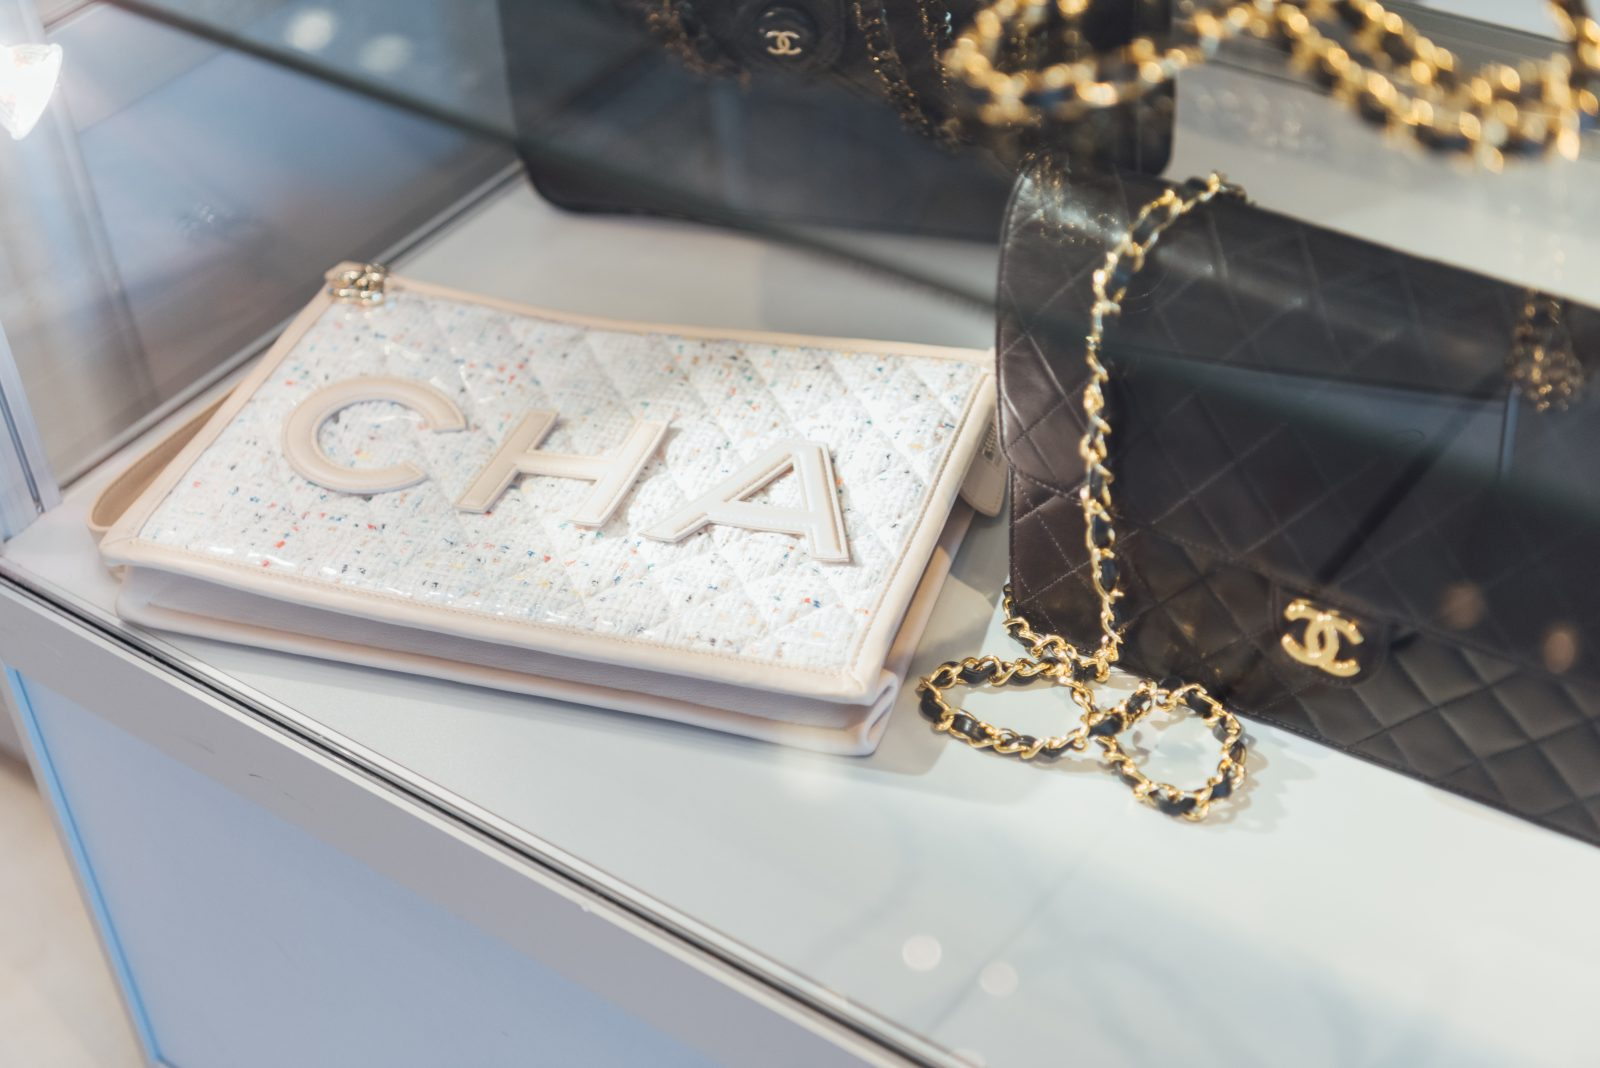 Chanel vintage bags at Gus Mayer